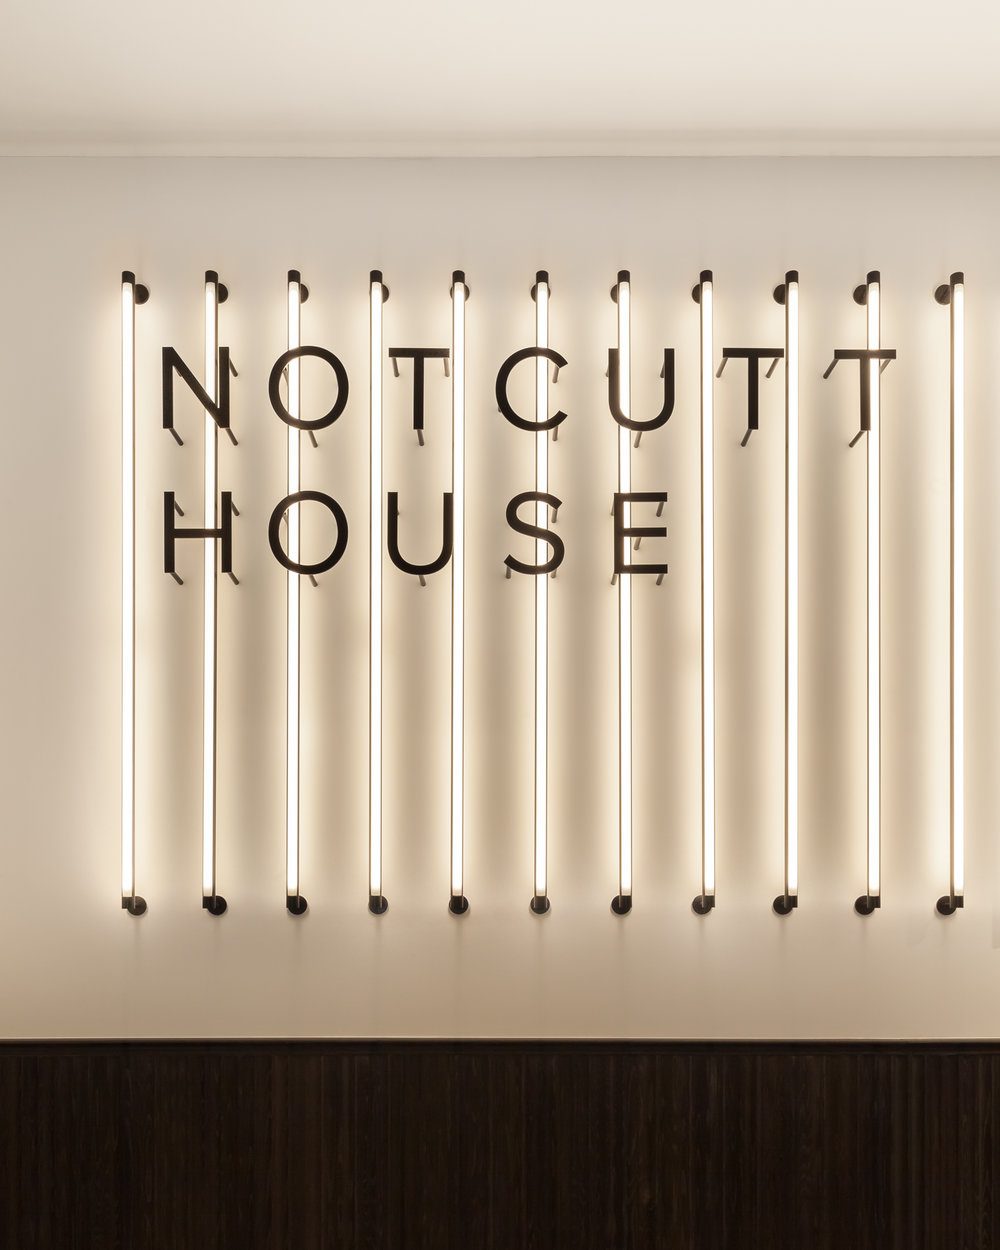 IMG_1807-Edit - Notcutt_House_BGY.jpg